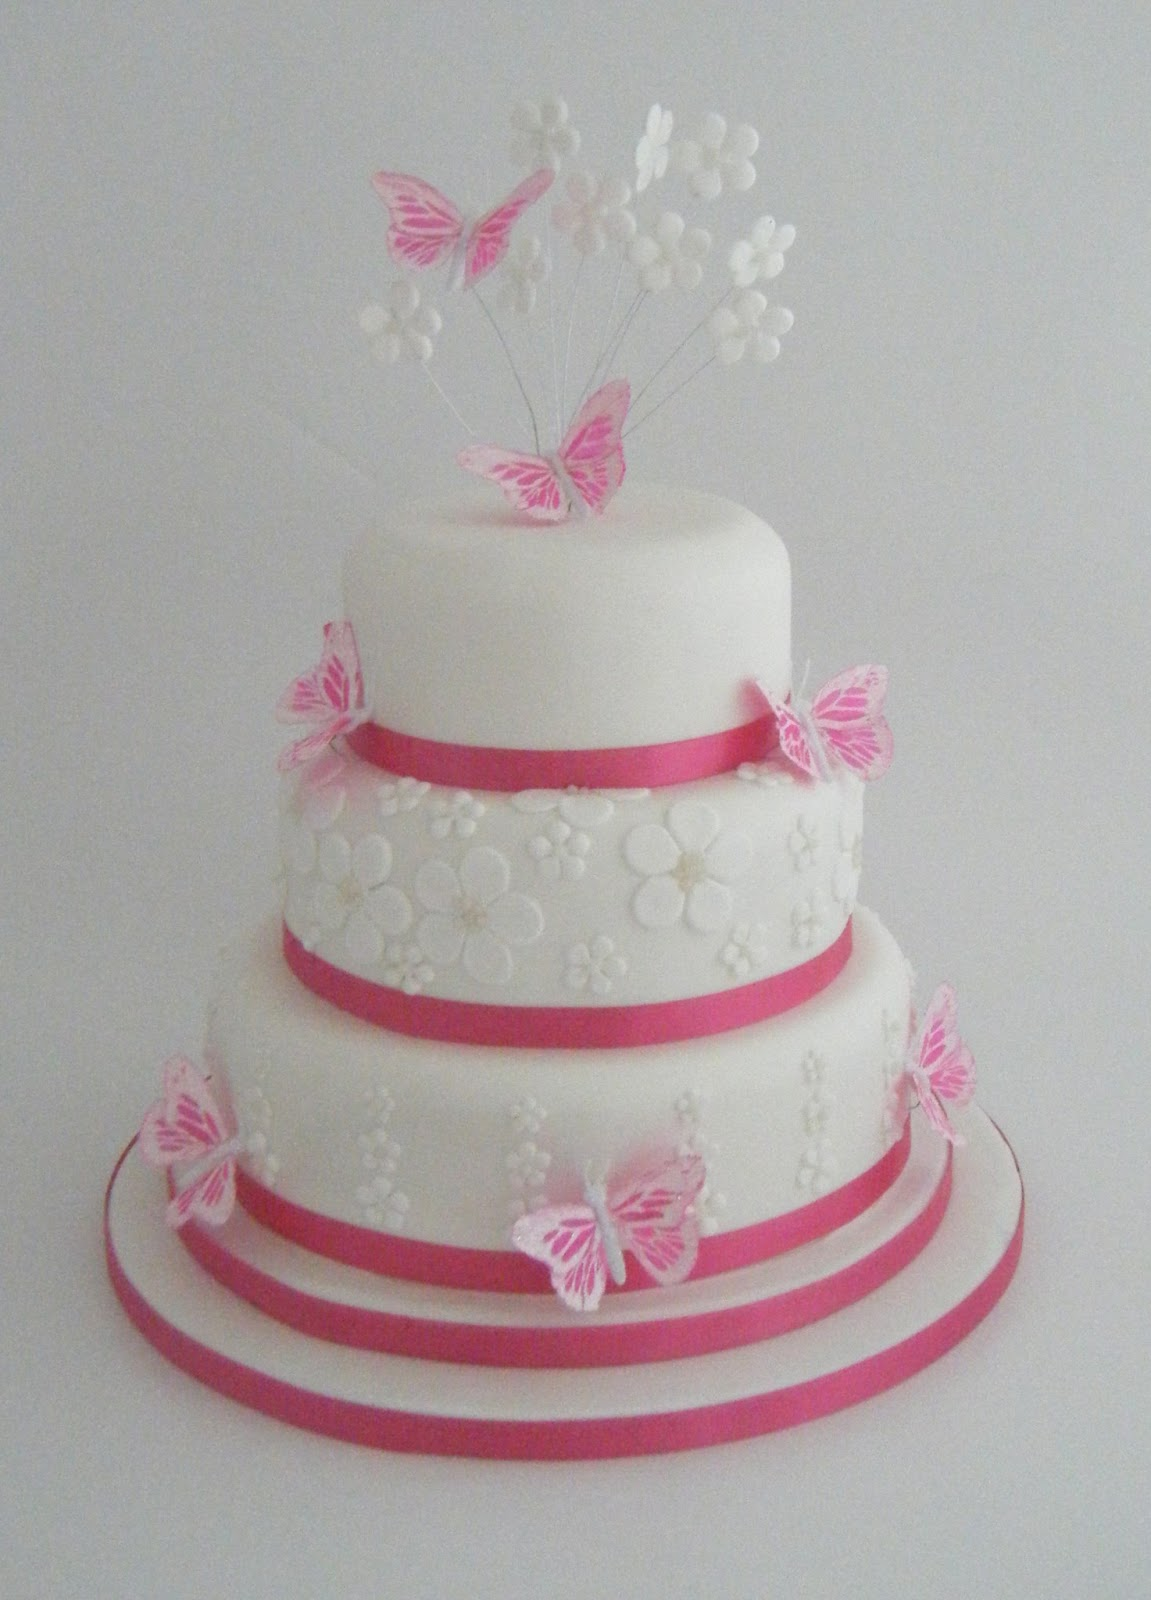 Erfly Wedding Cake Decorations Pictures